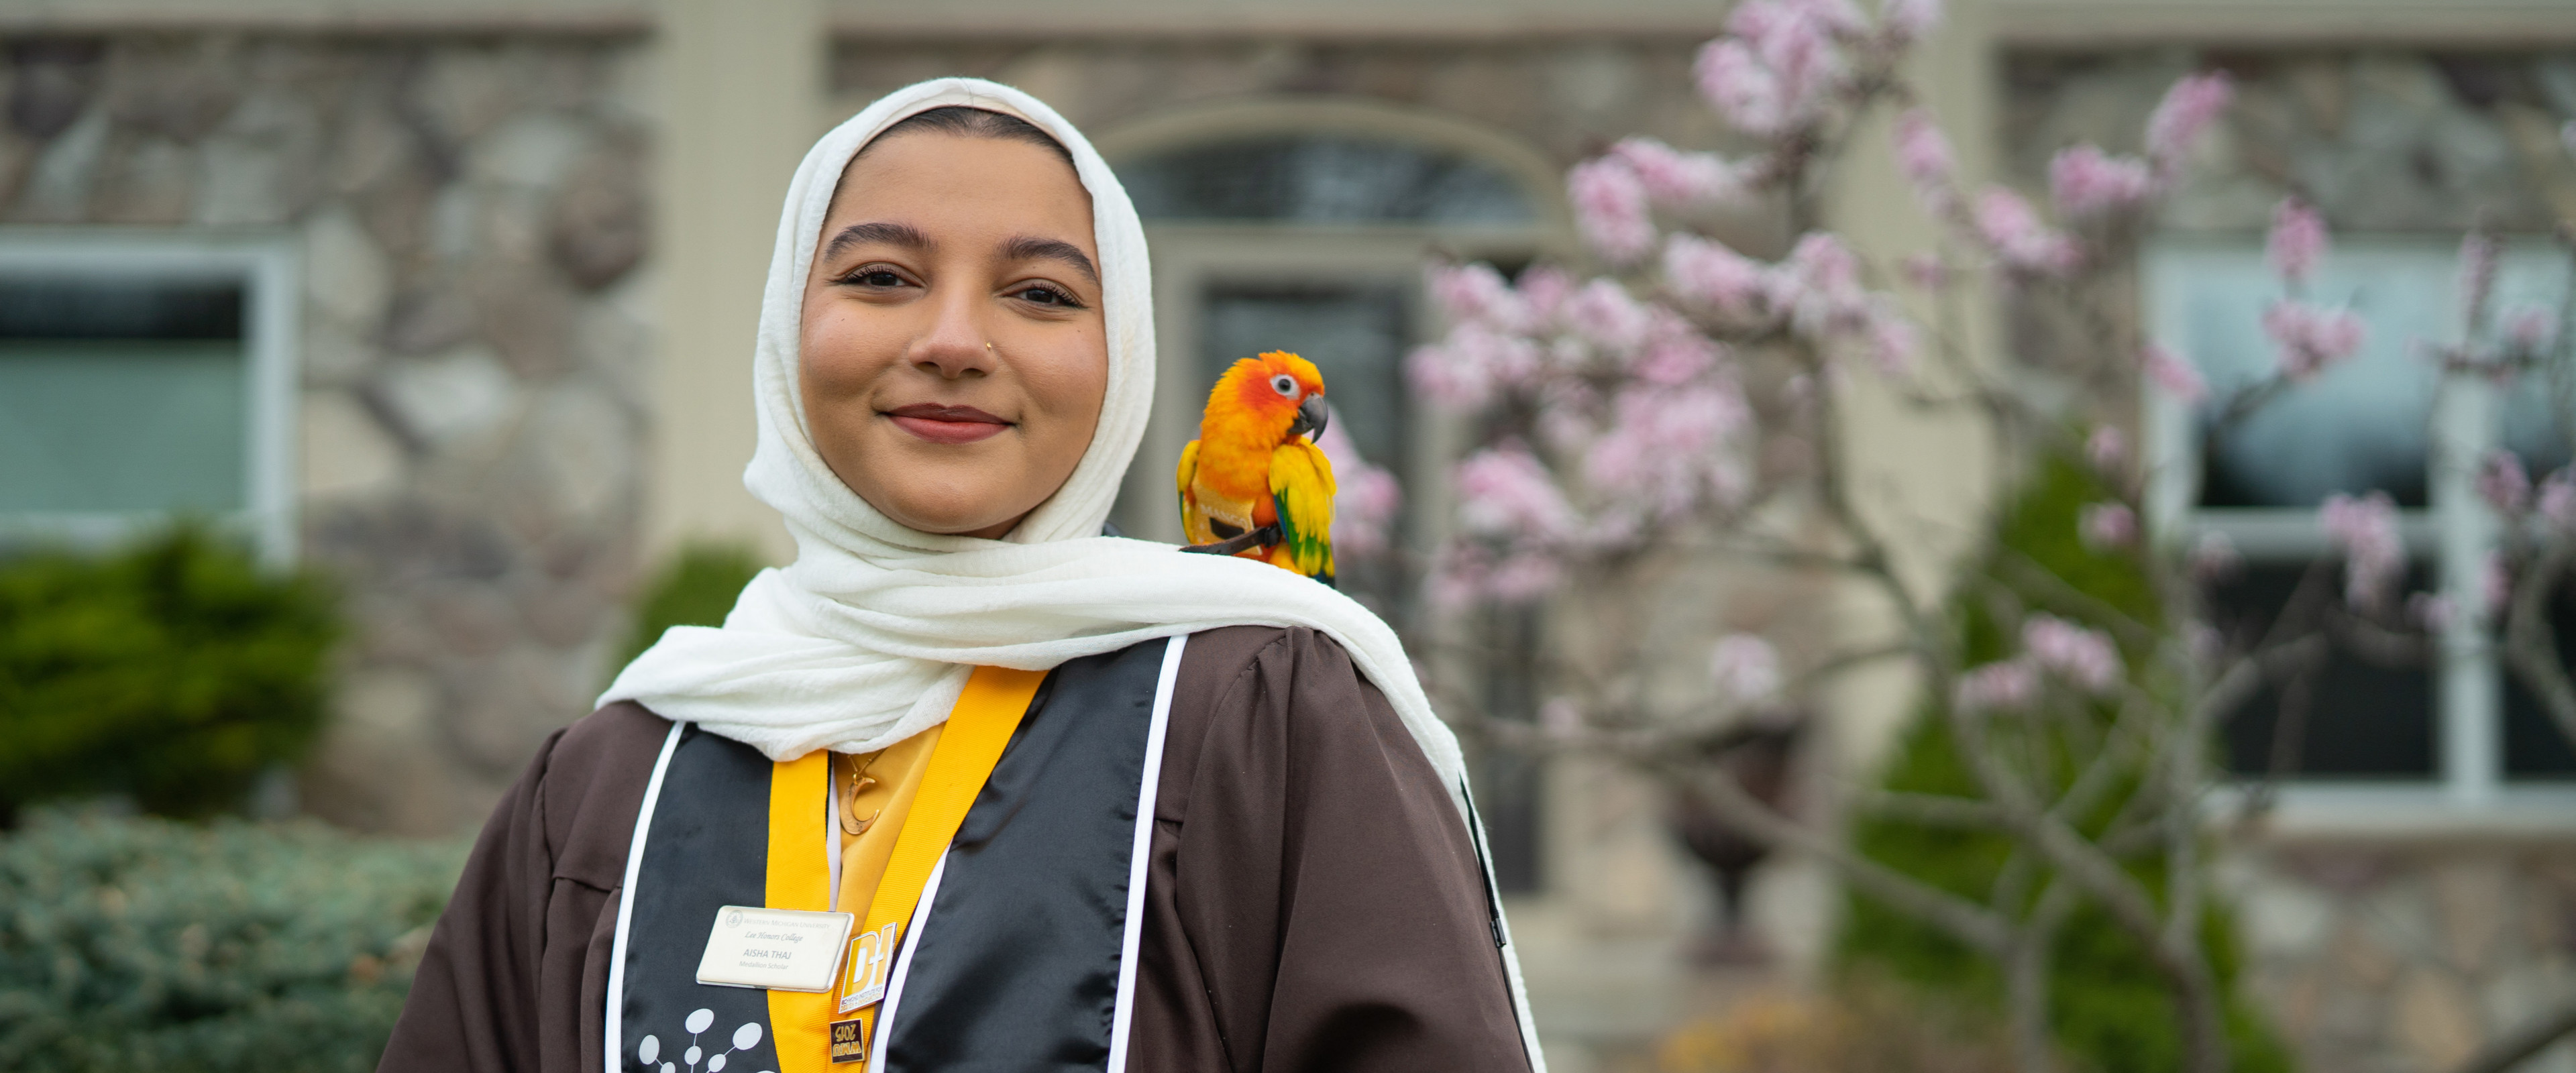 Aisha Thaj poses for a photo with her pet parrot on her shoulder.